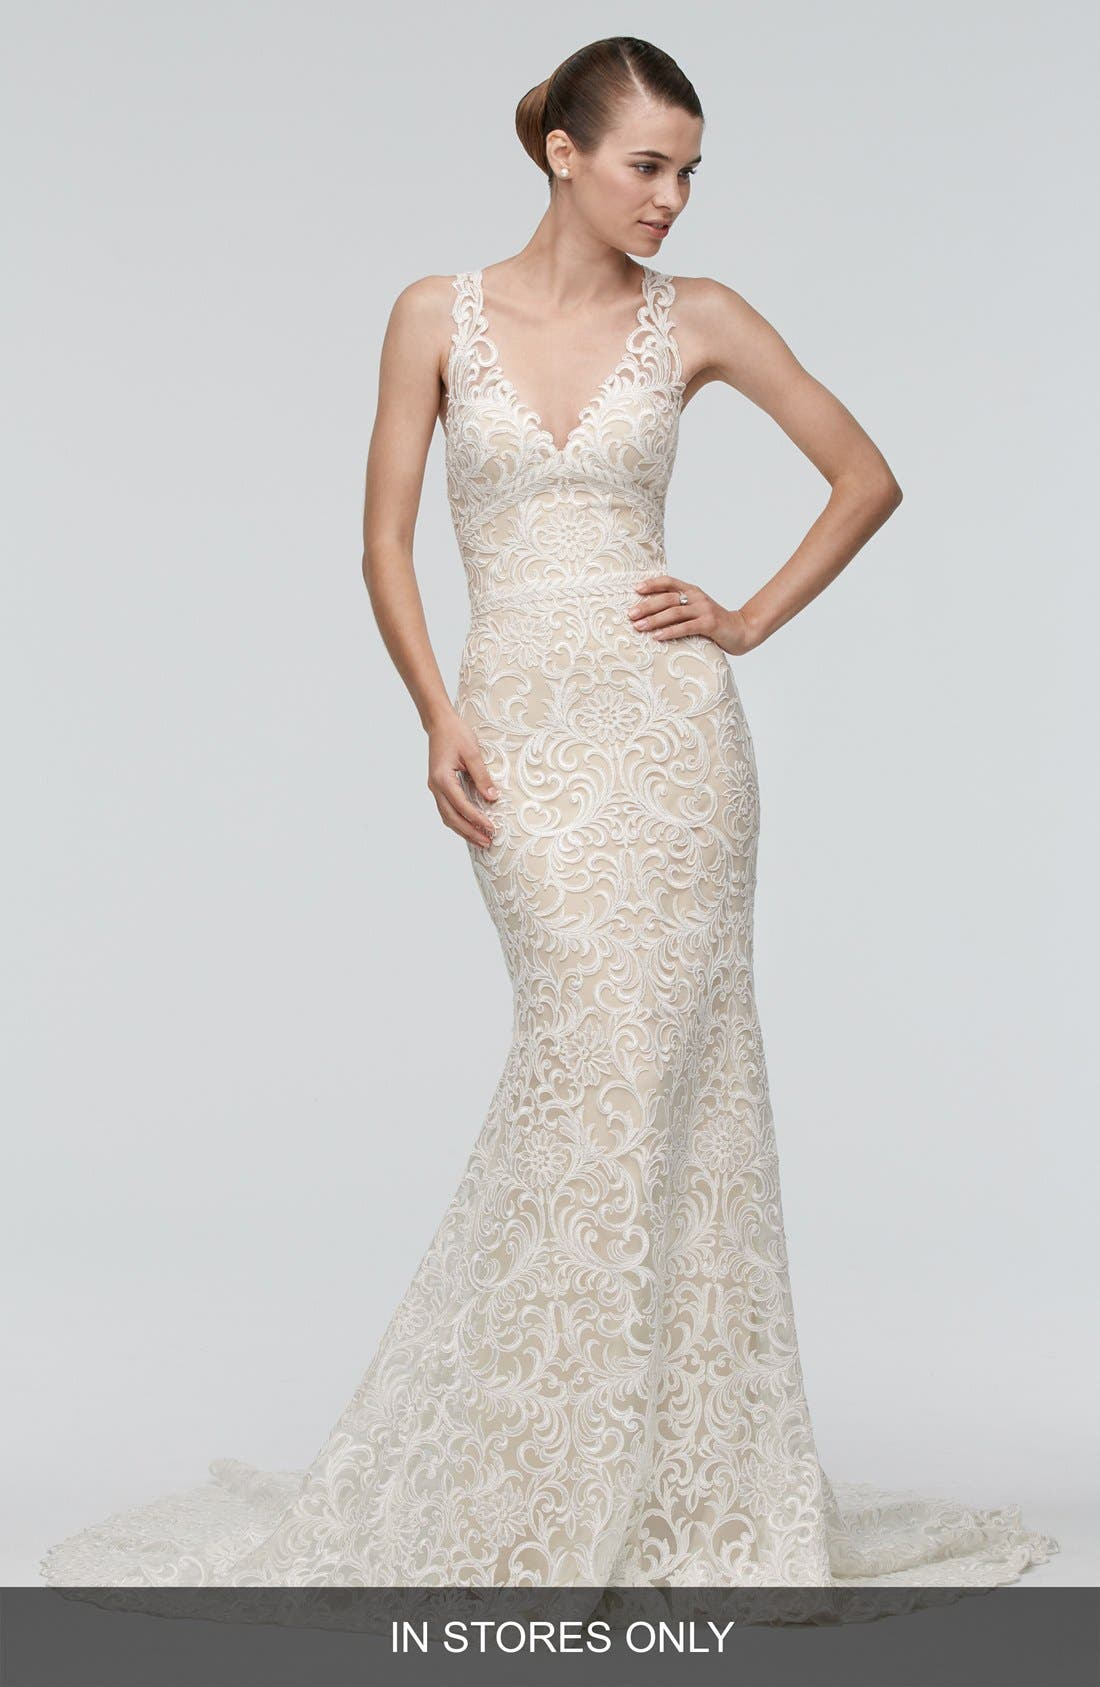 Georgia Back Cutout Lace Trumpet Gown,                         Main,                         color, IVORY/NUDE